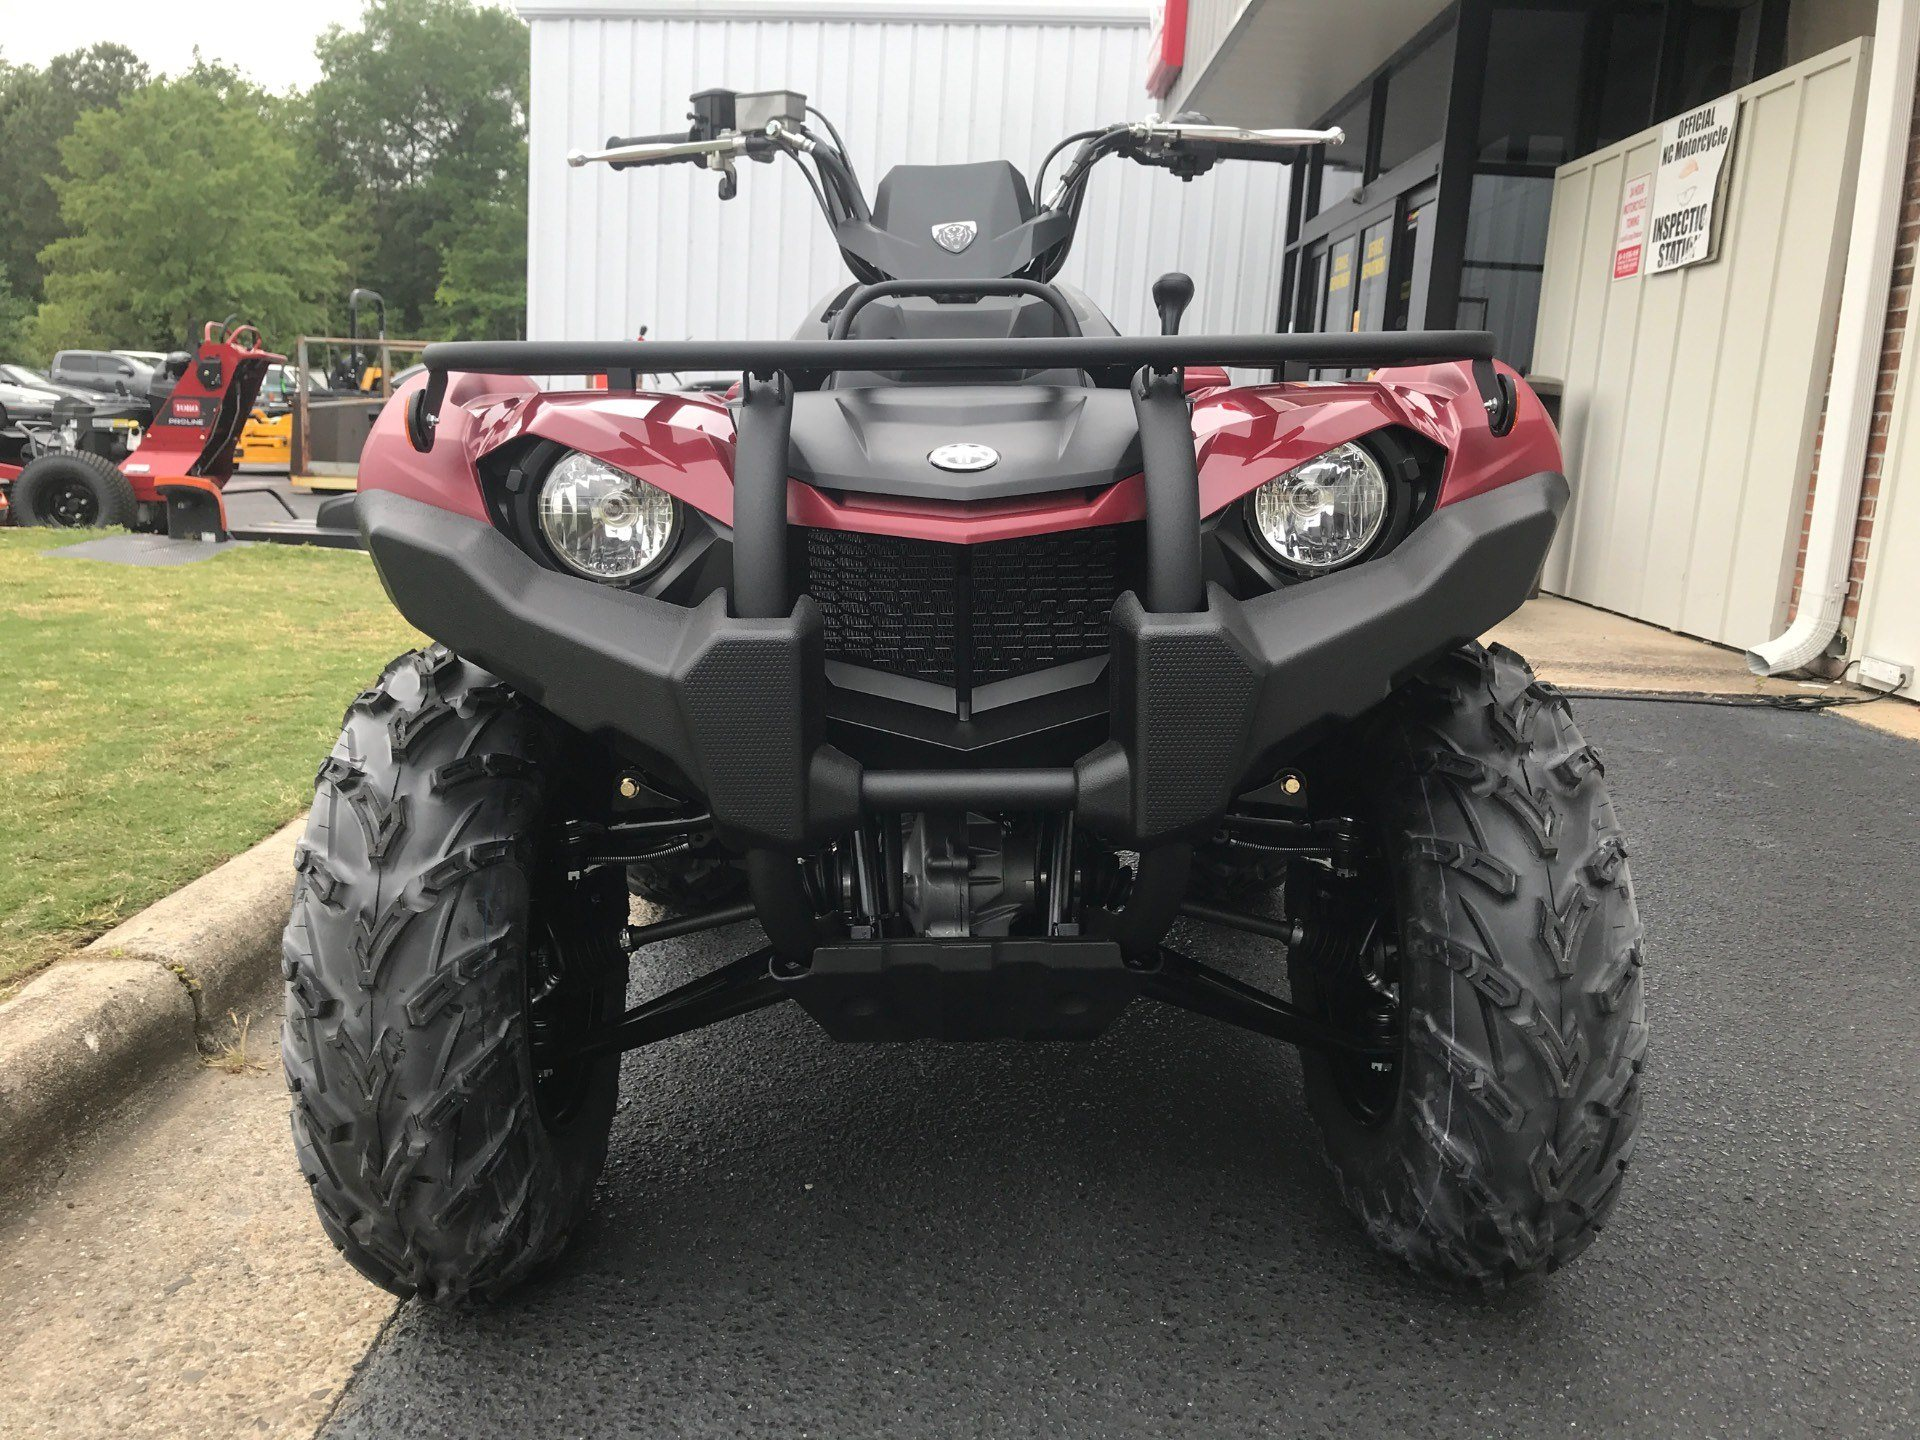 2020 Yamaha Kodiak 450 in Greenville, North Carolina - Photo 3